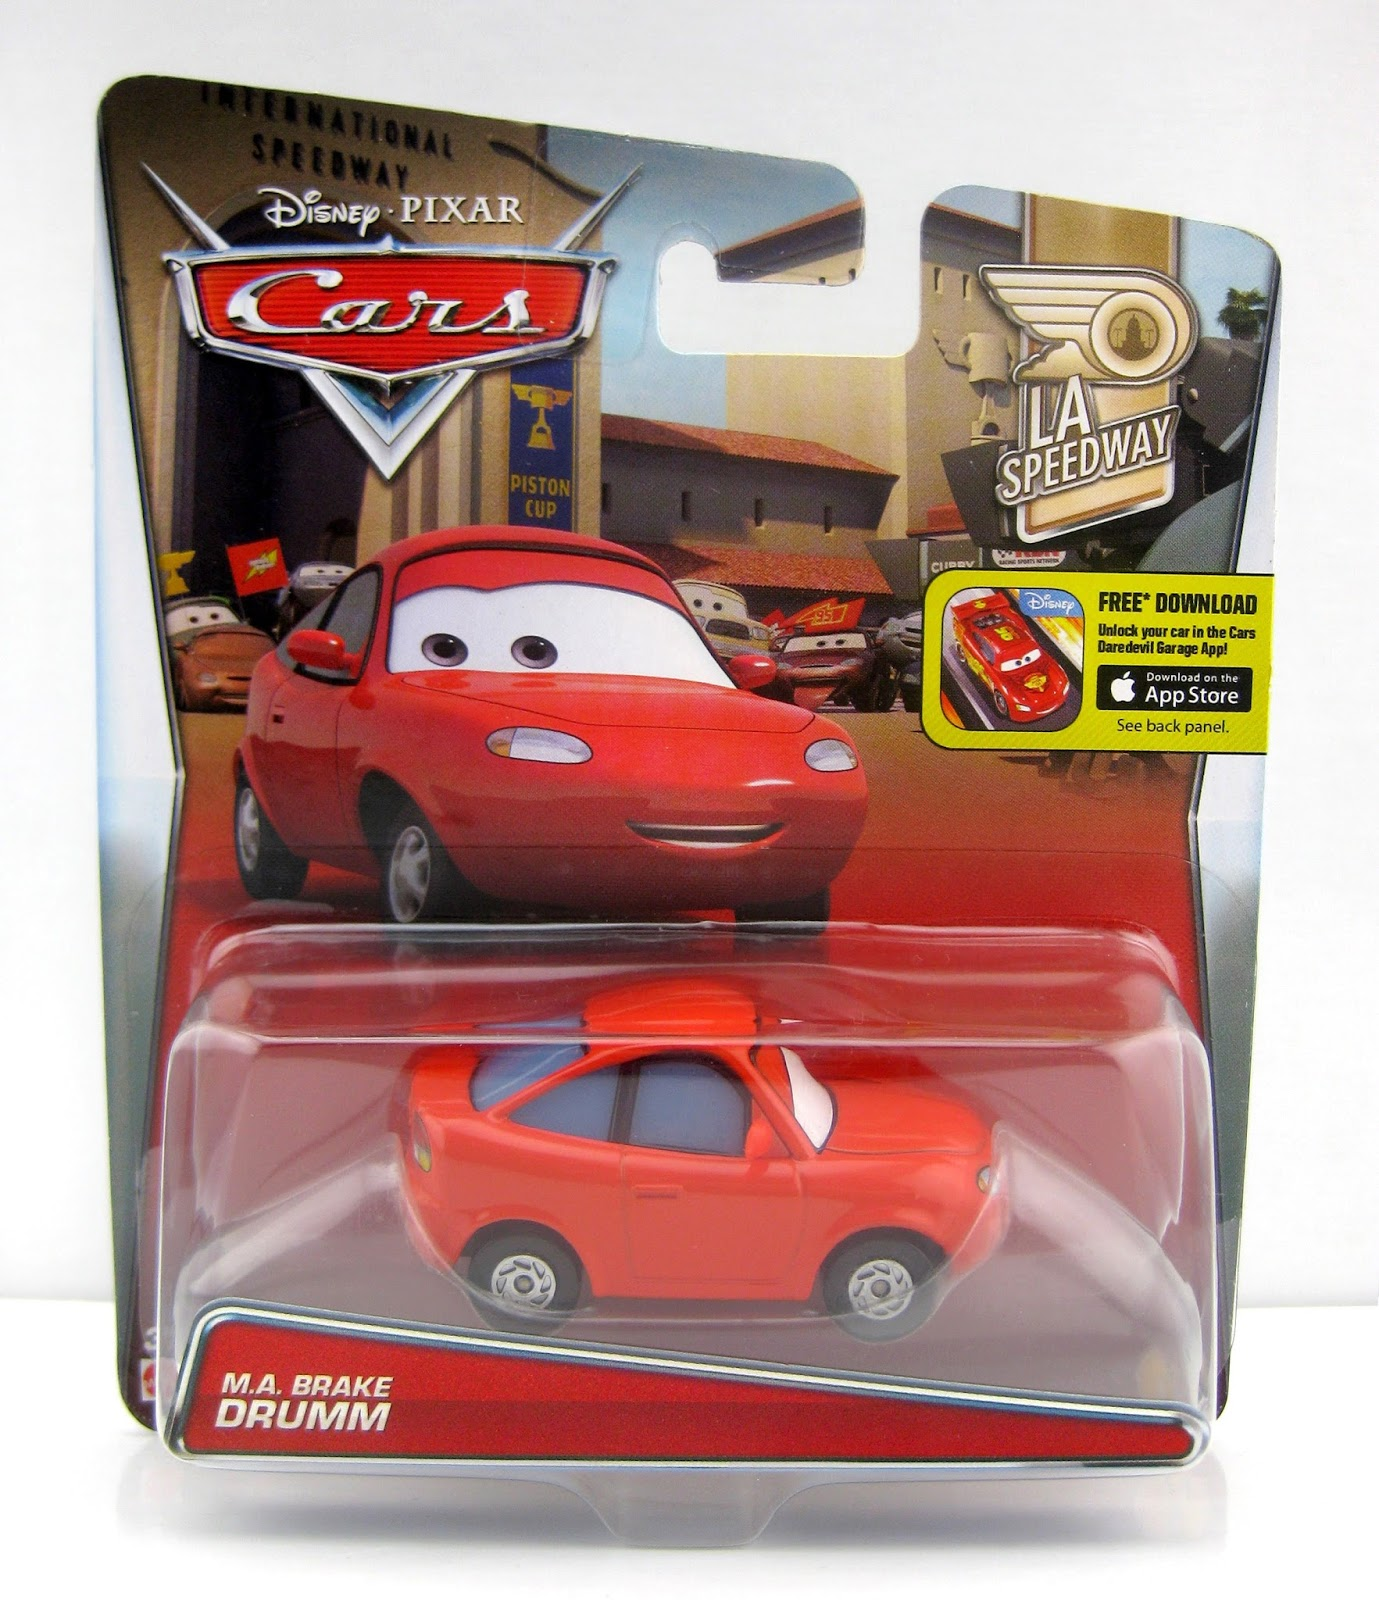 pixar cars m.a. brake drumm